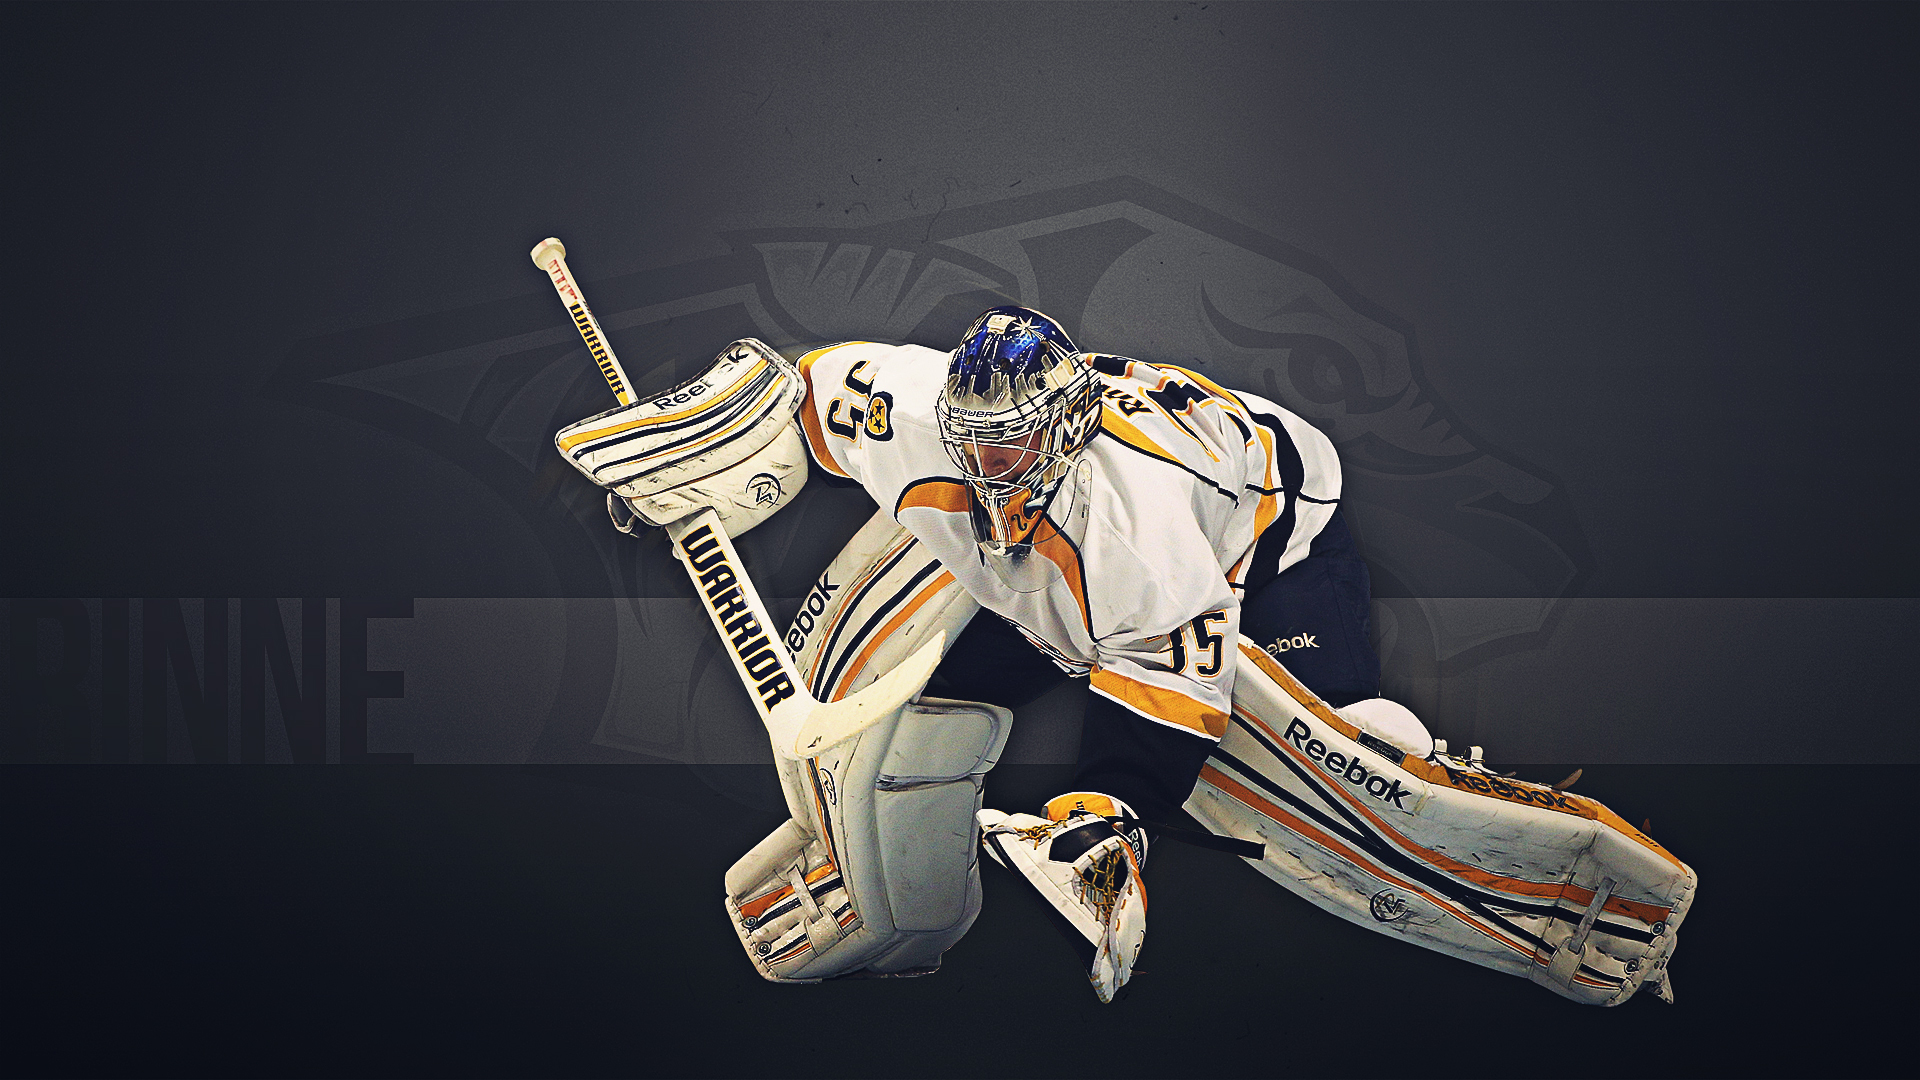 Famous Hockey player Nashville Pekka Rinne wallpapers and image